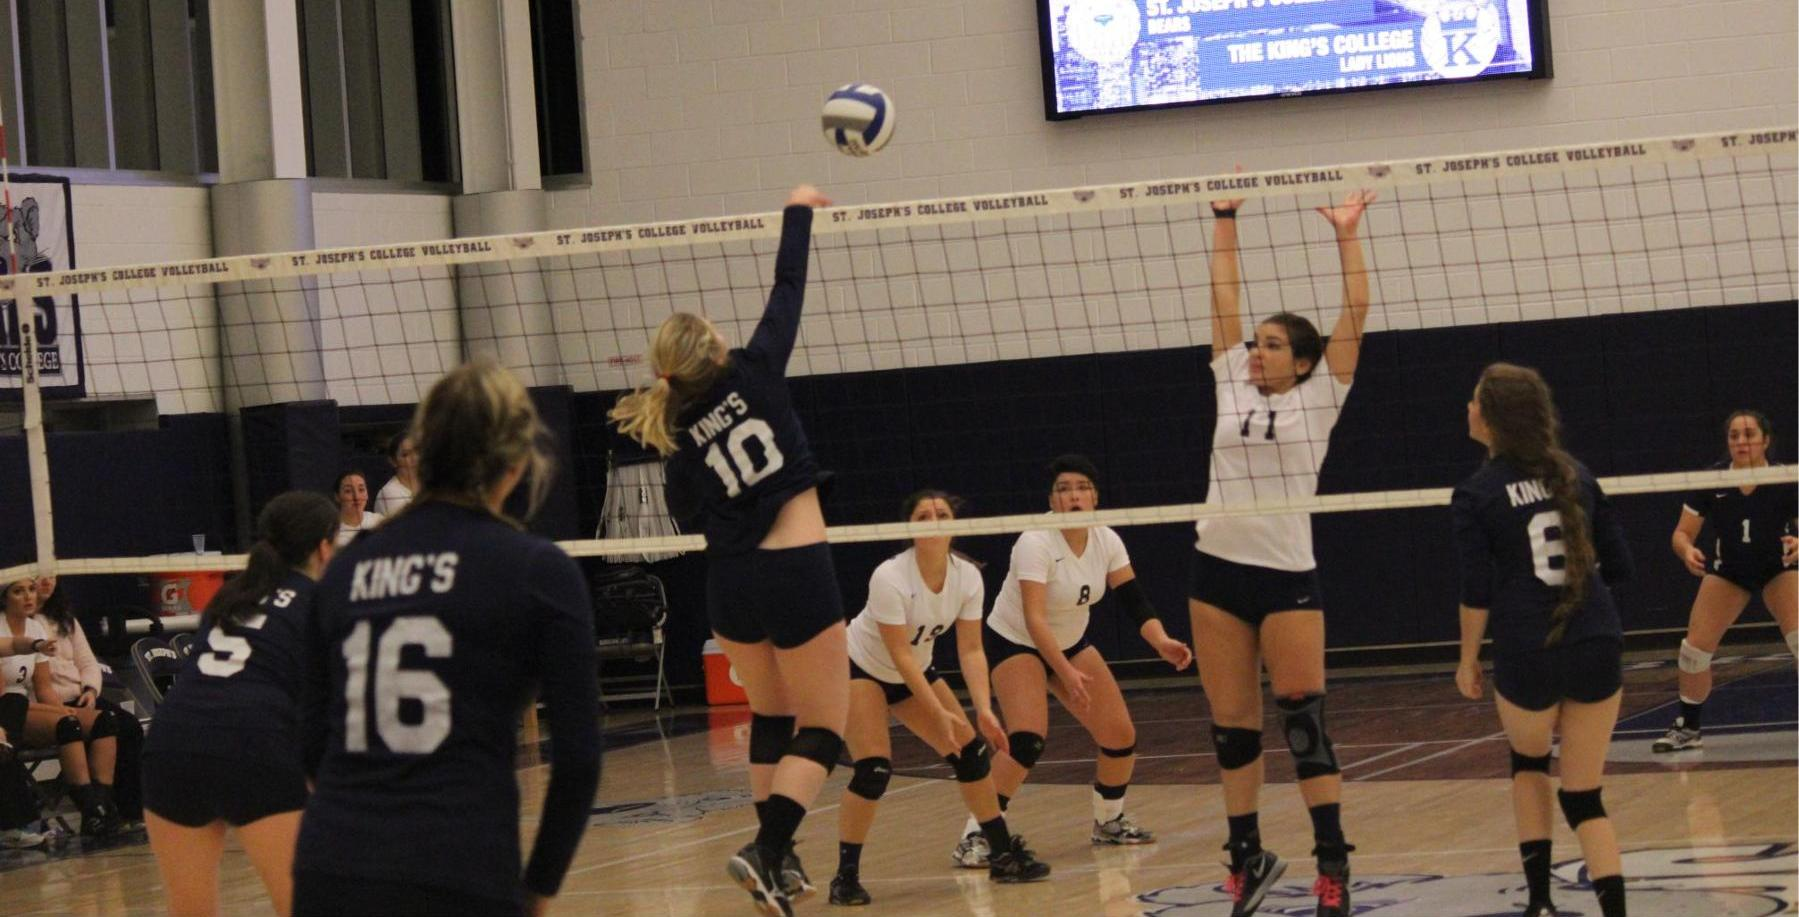 Women's Volleyball Falls to Pratt